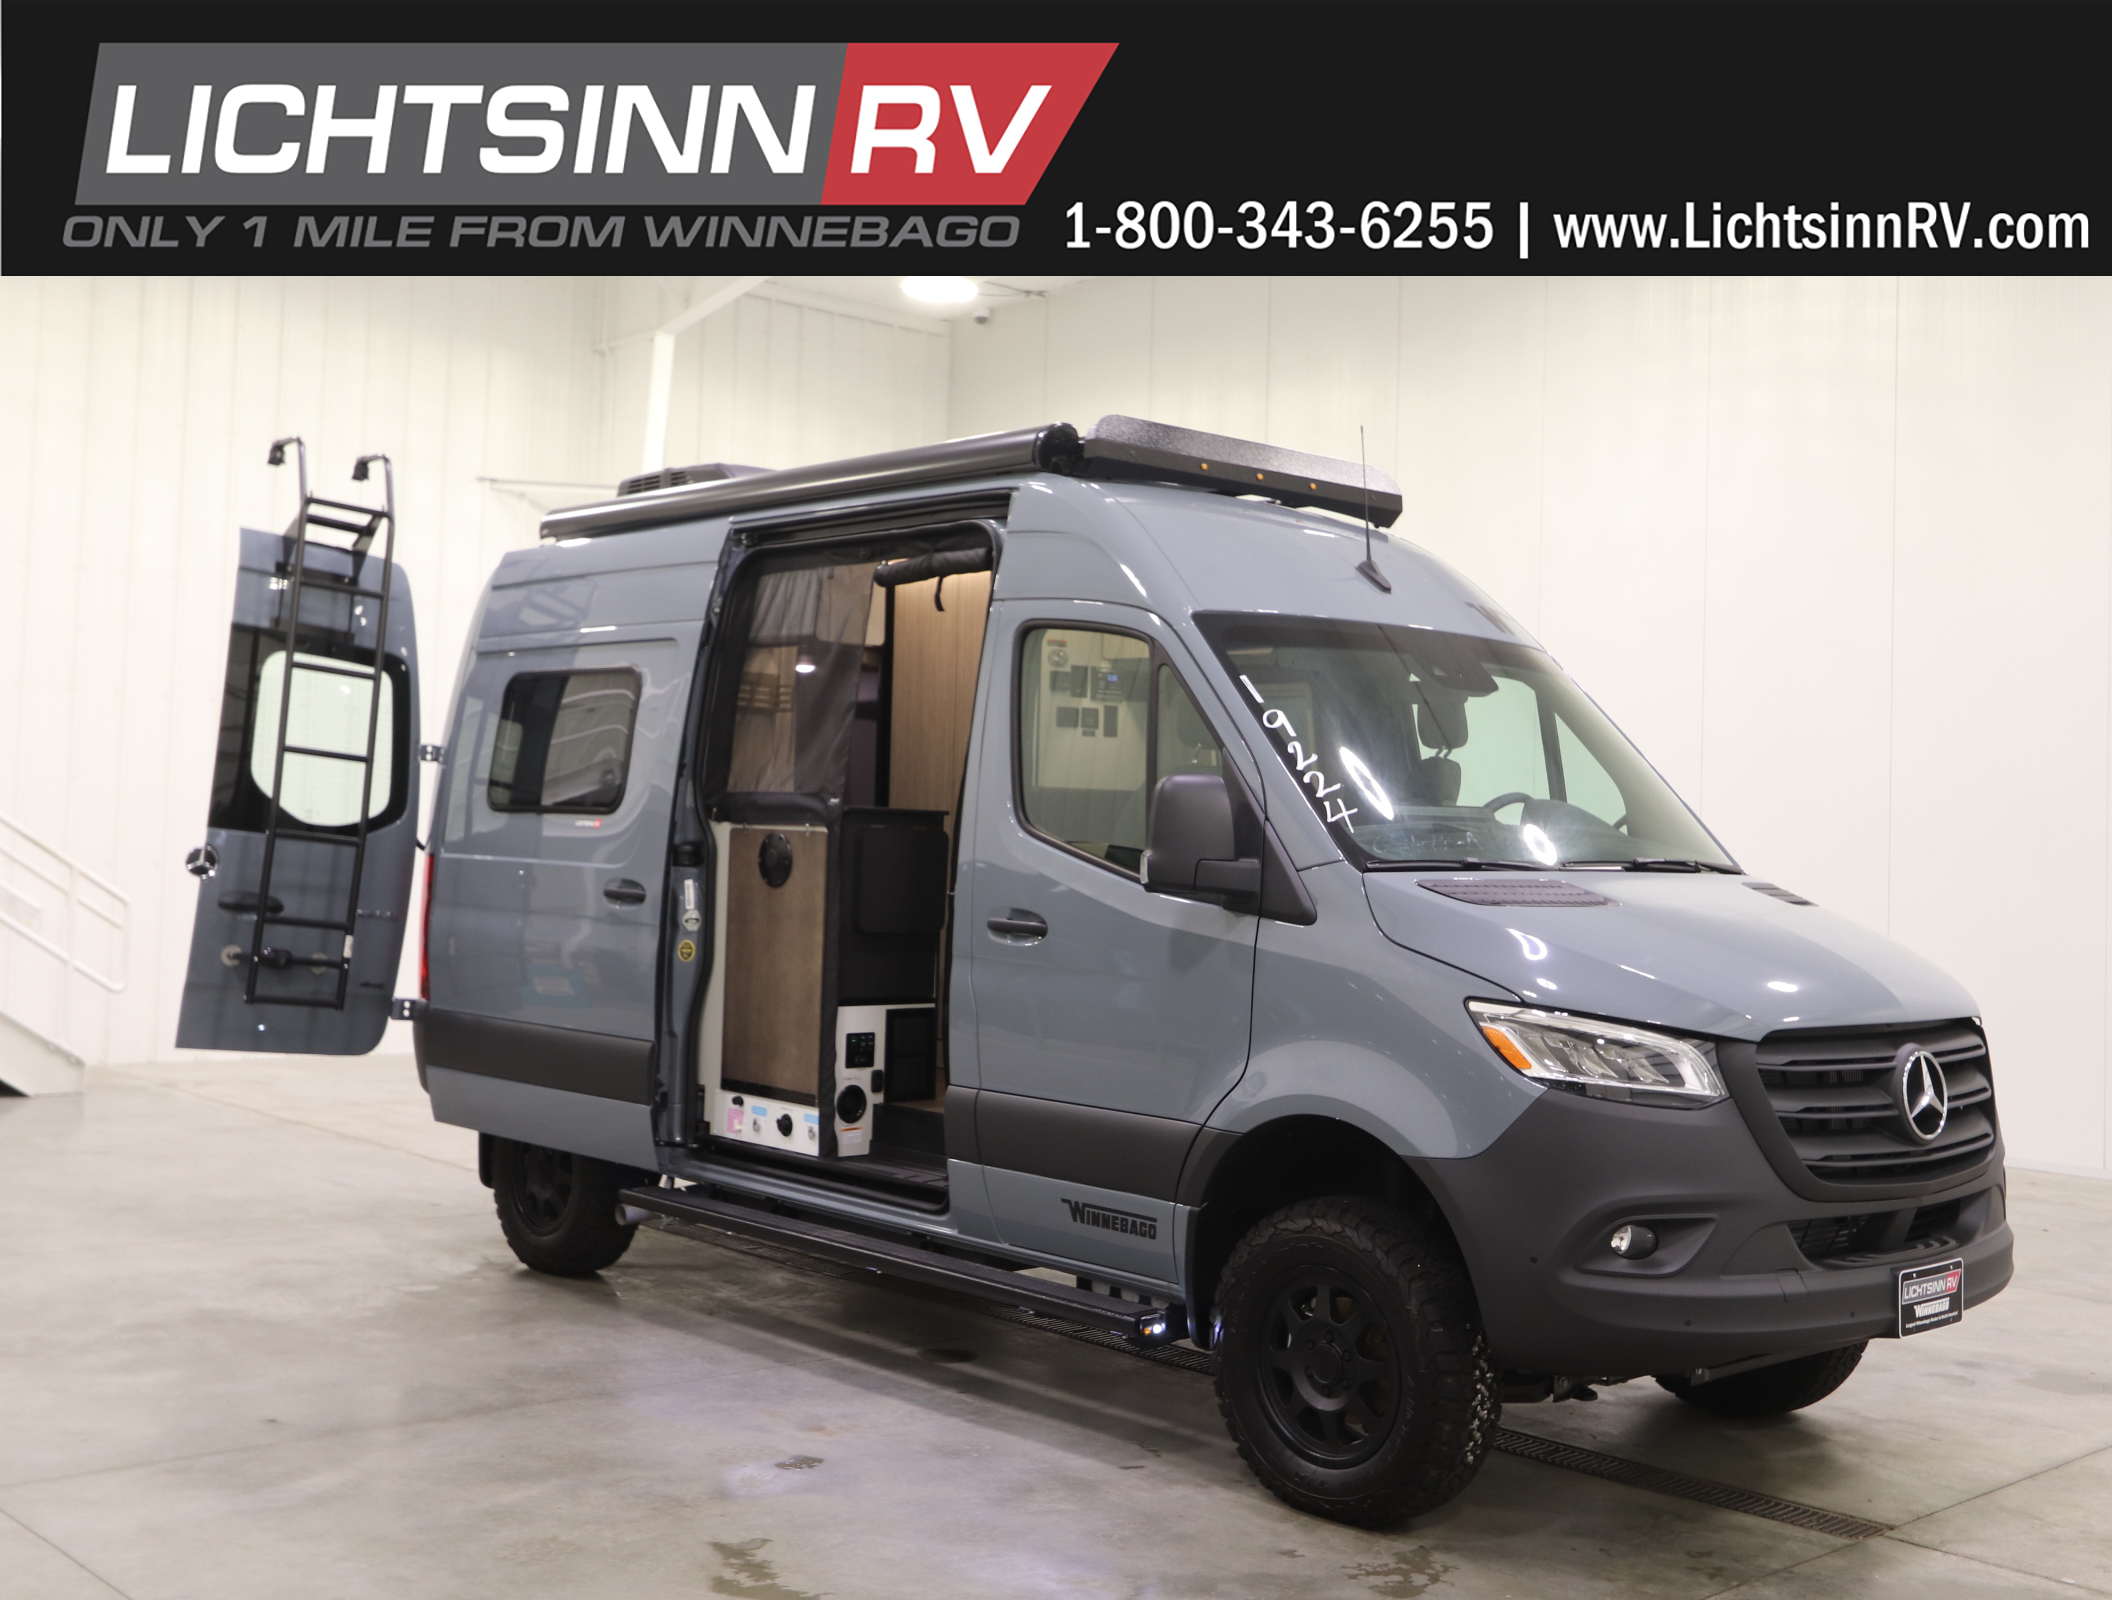 Lichtsinn RV Blog | The Winnebago RV Life